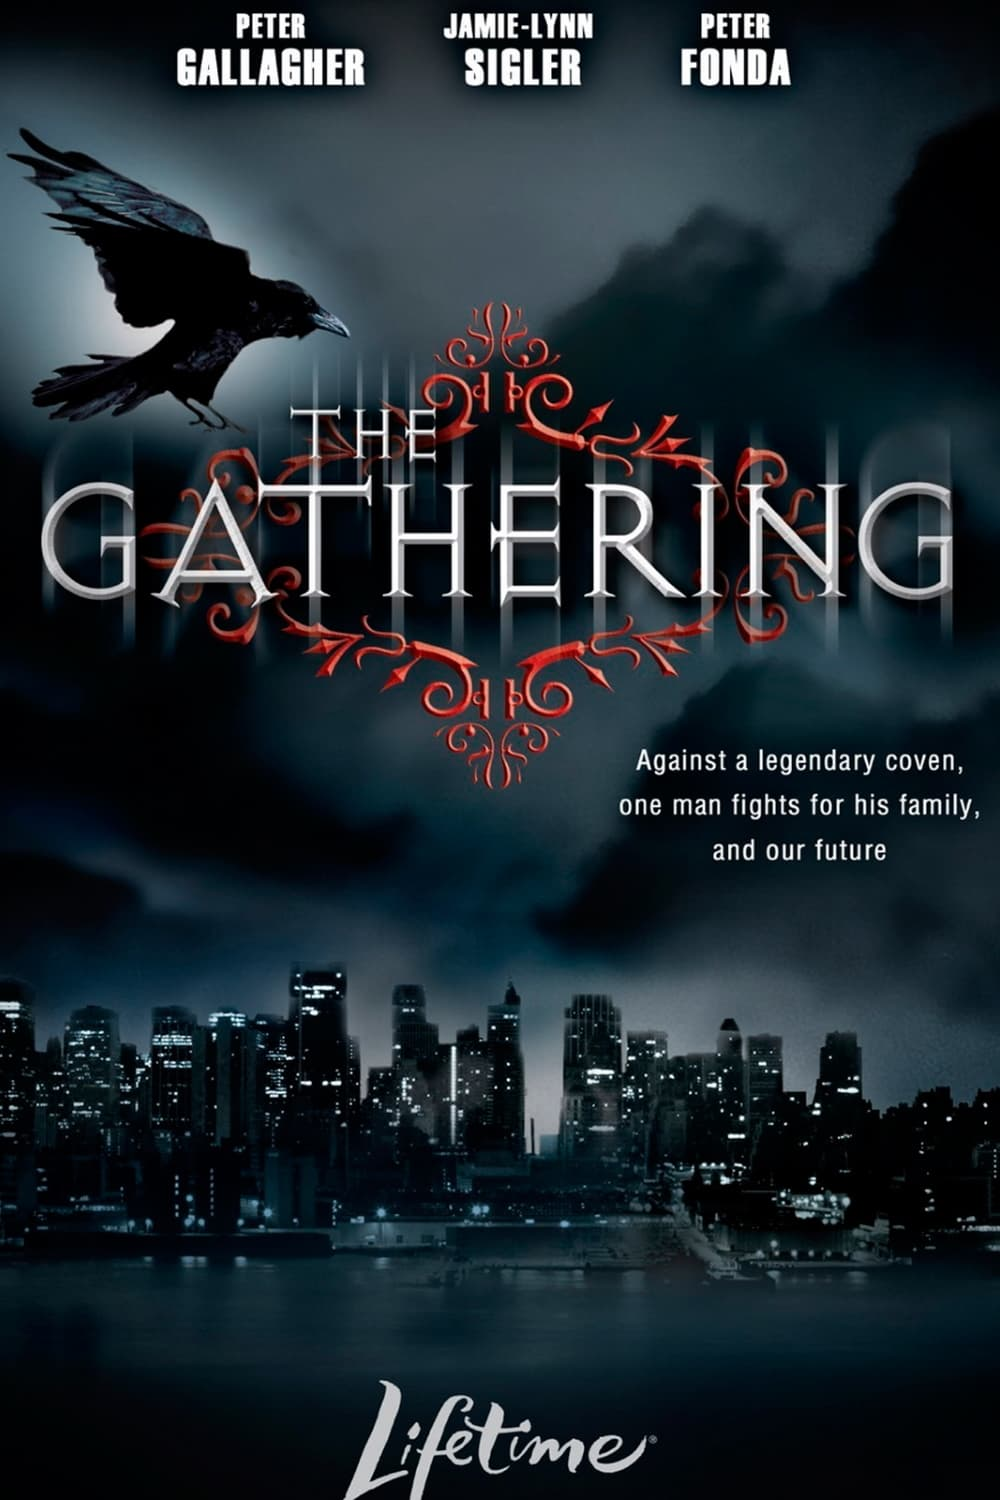 The Gathering (2007)